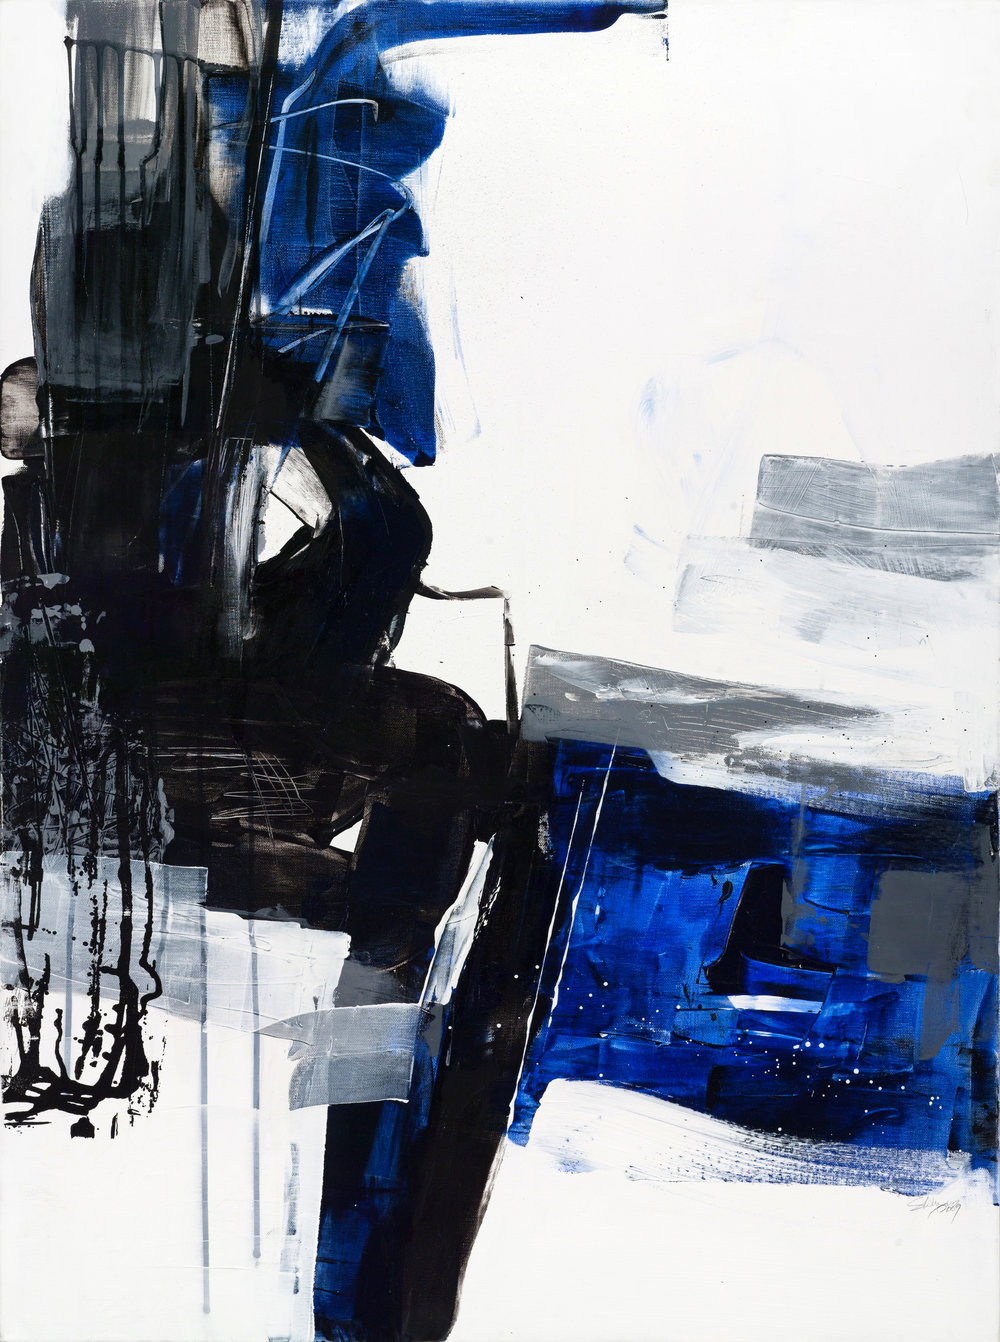 Defy #1 , 100 x 76 cm, mixed media on canvas, 2009